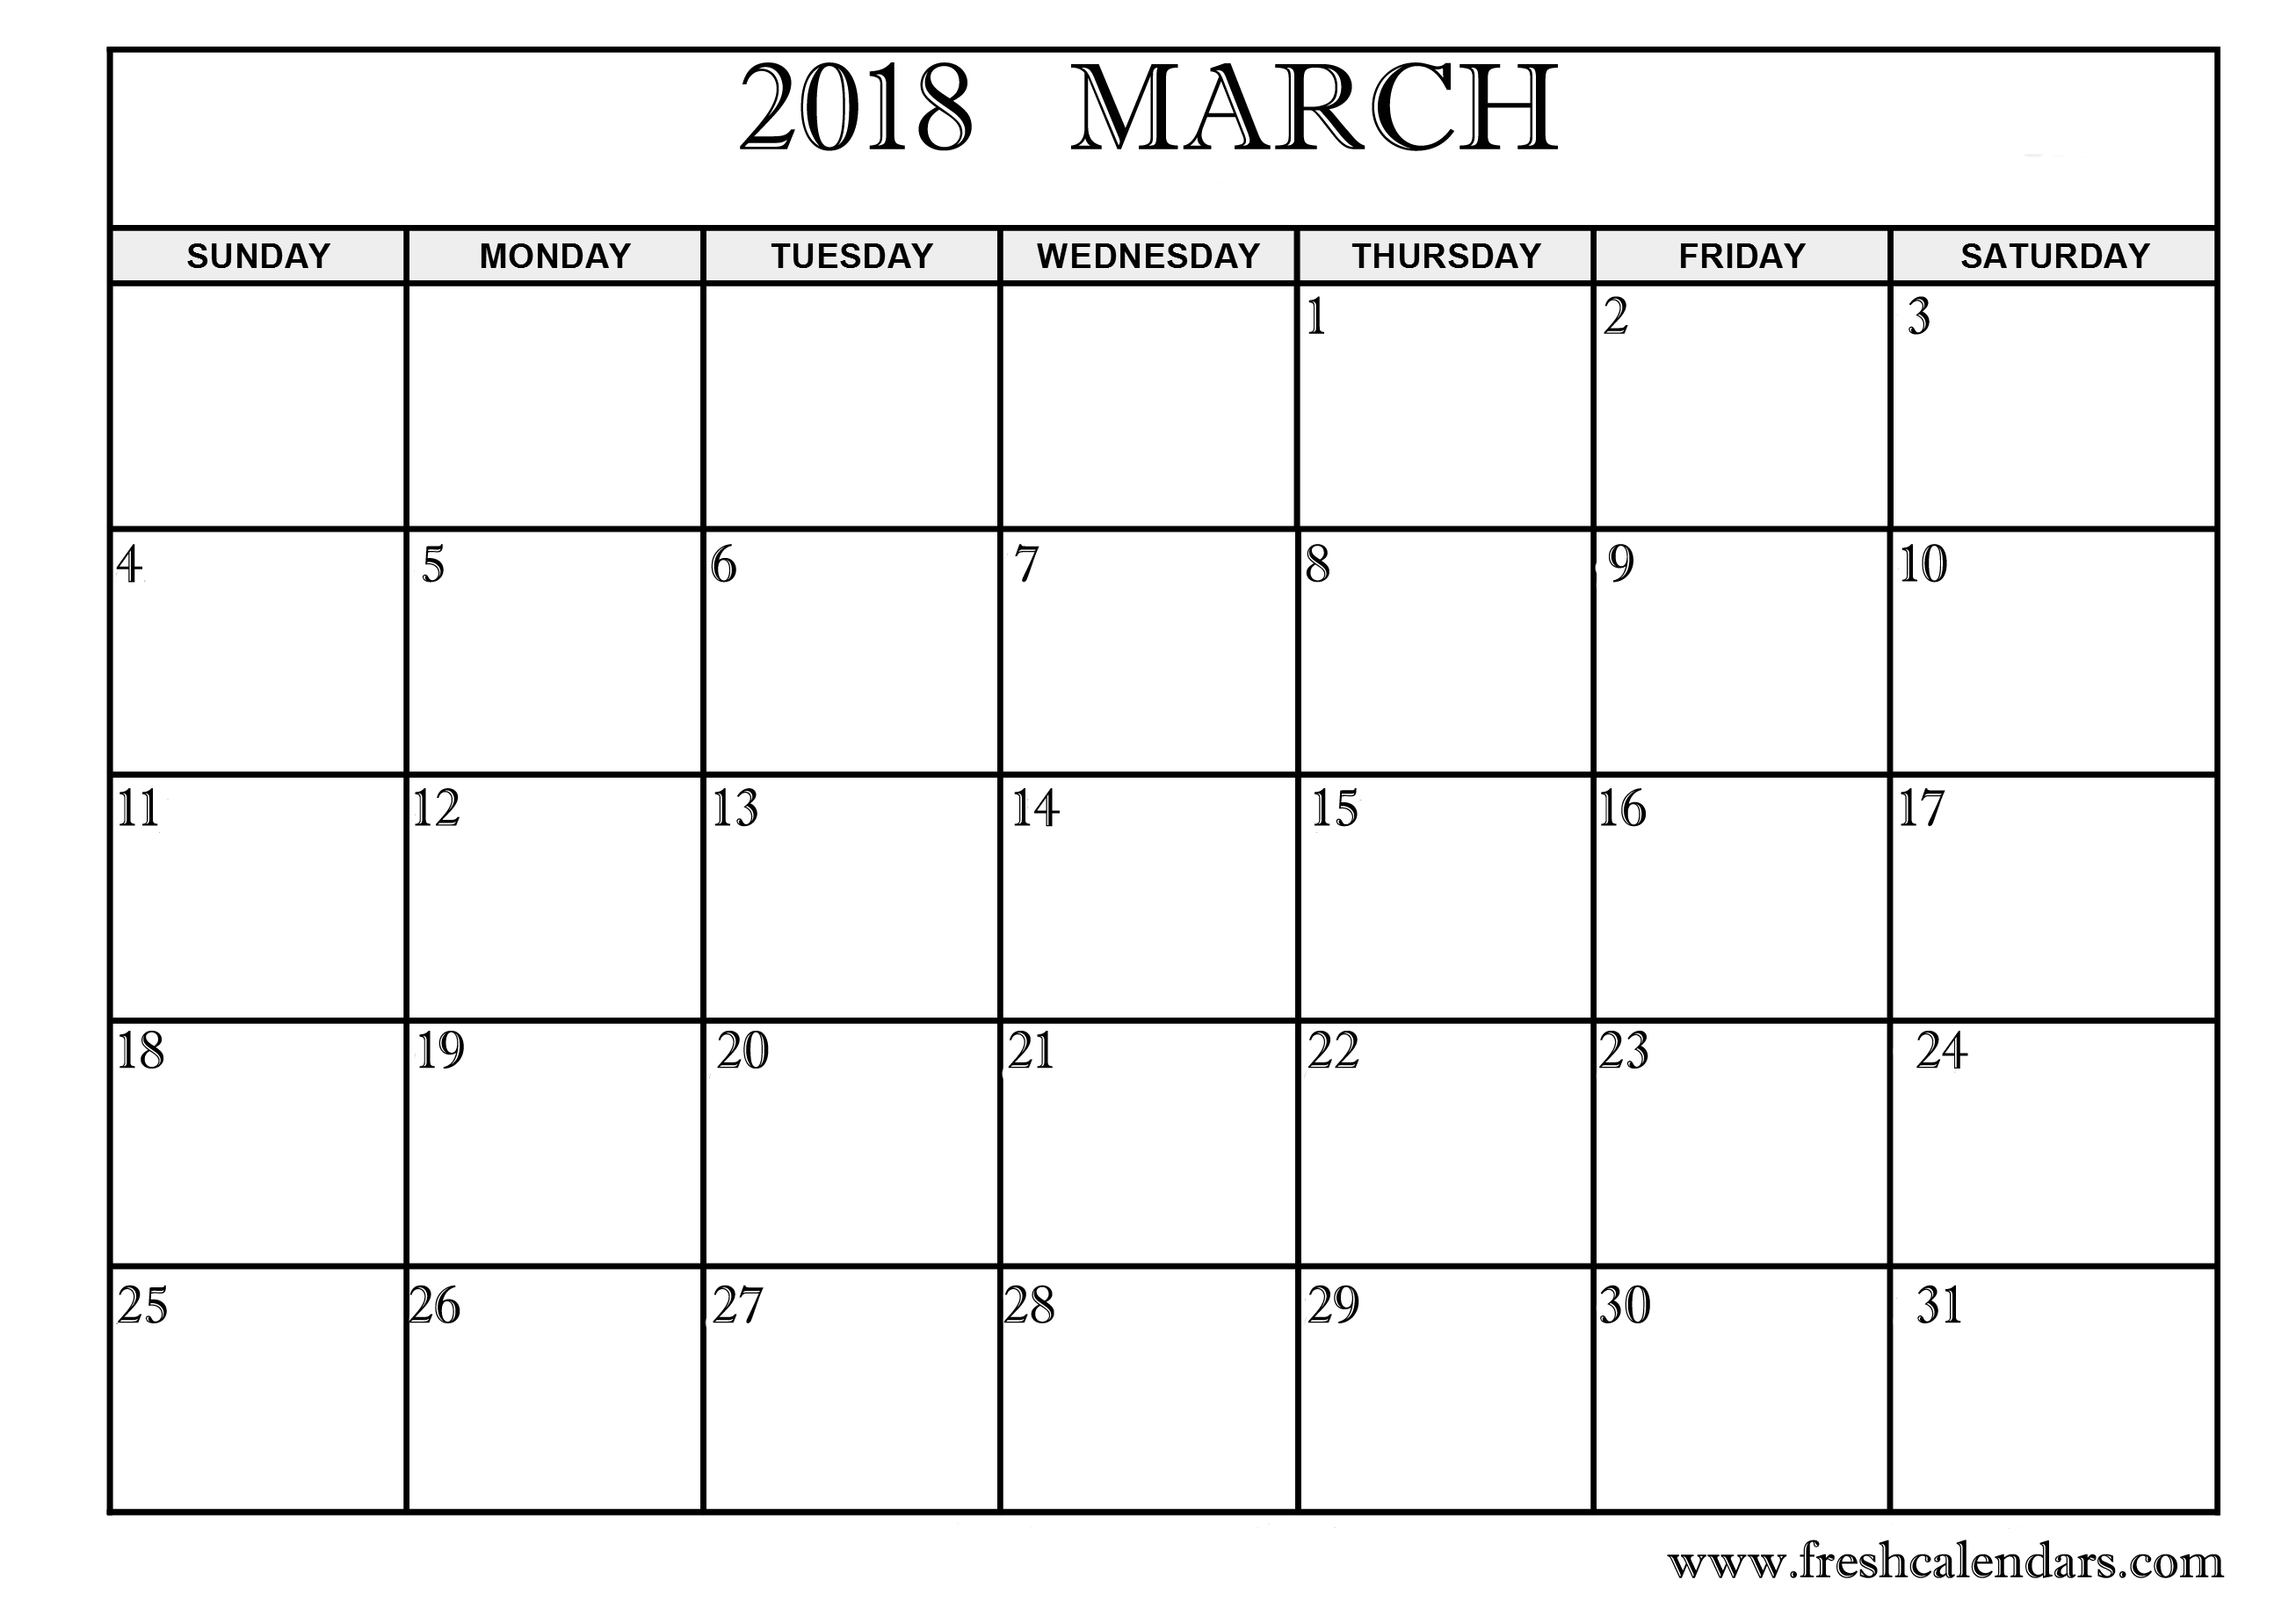 Basic Template of Mar 2018 Download